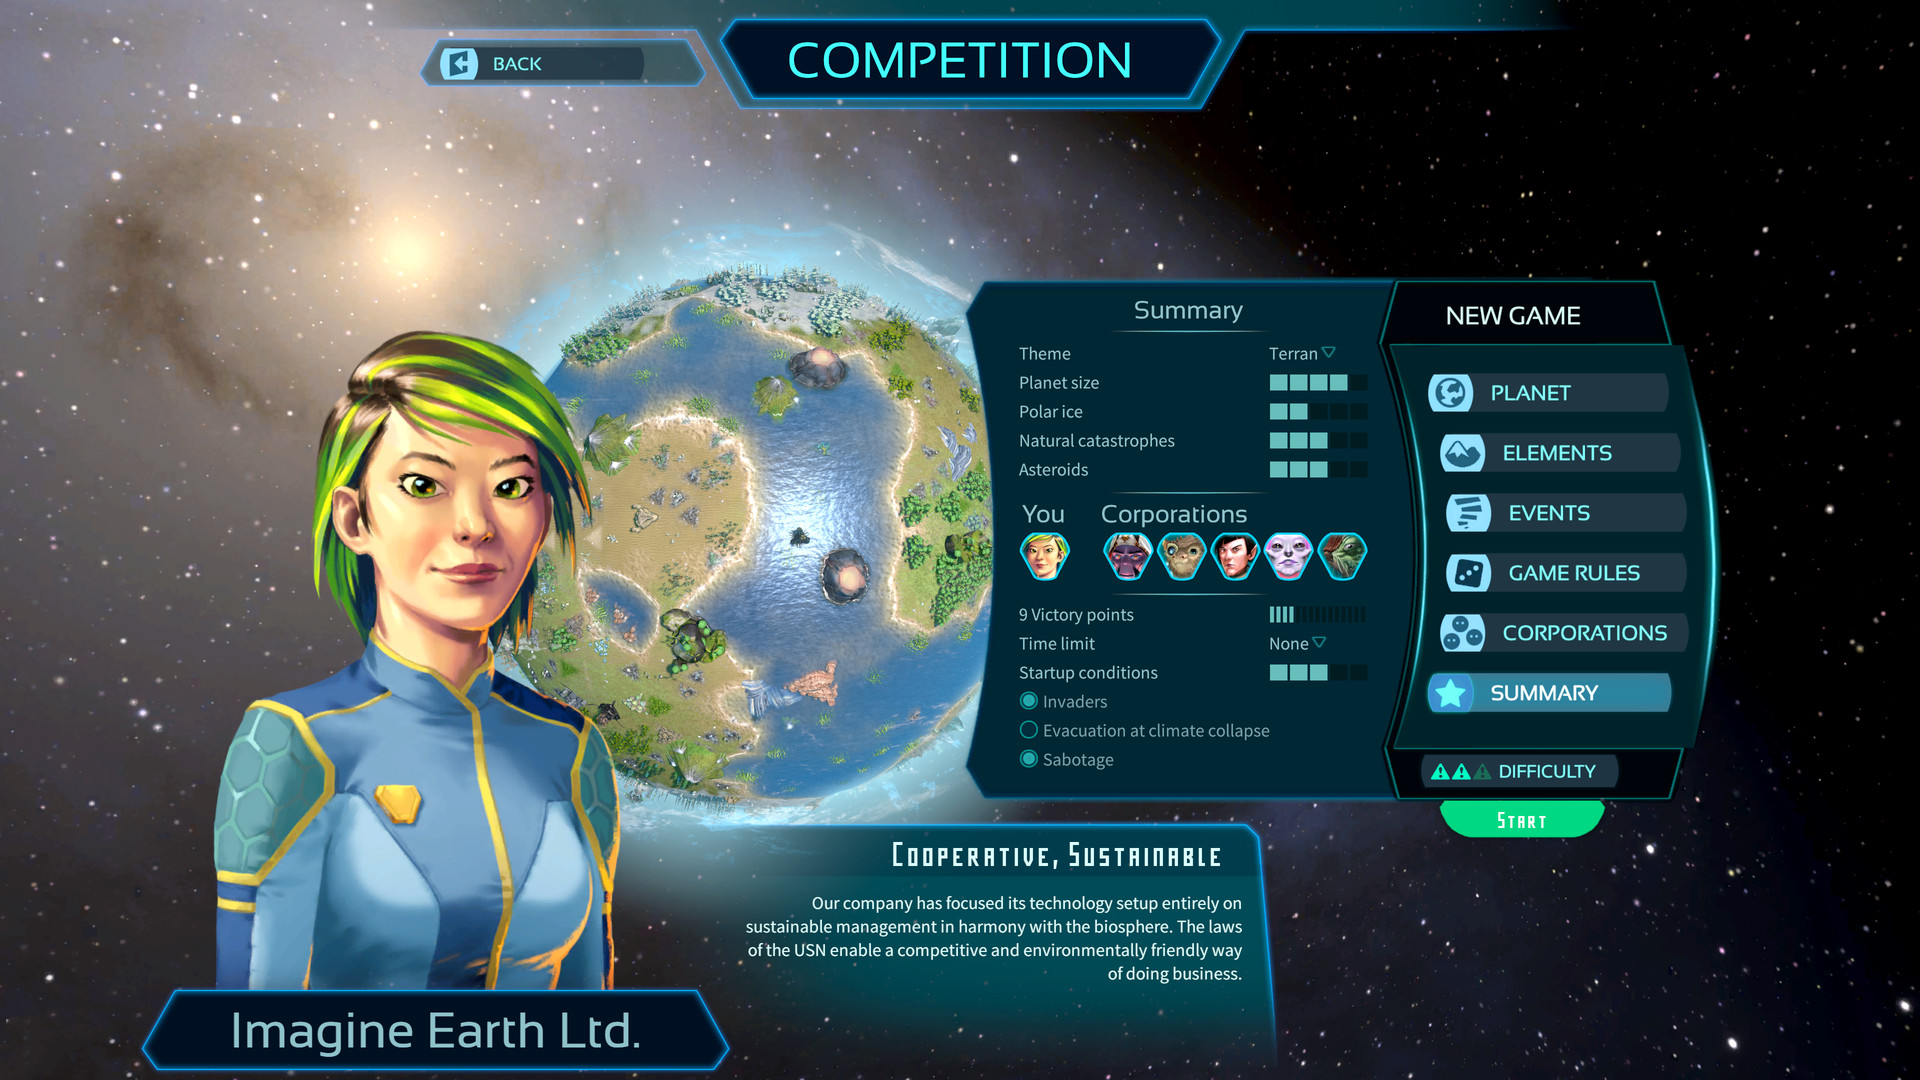 Find the best gaming PC for Imagine Earth